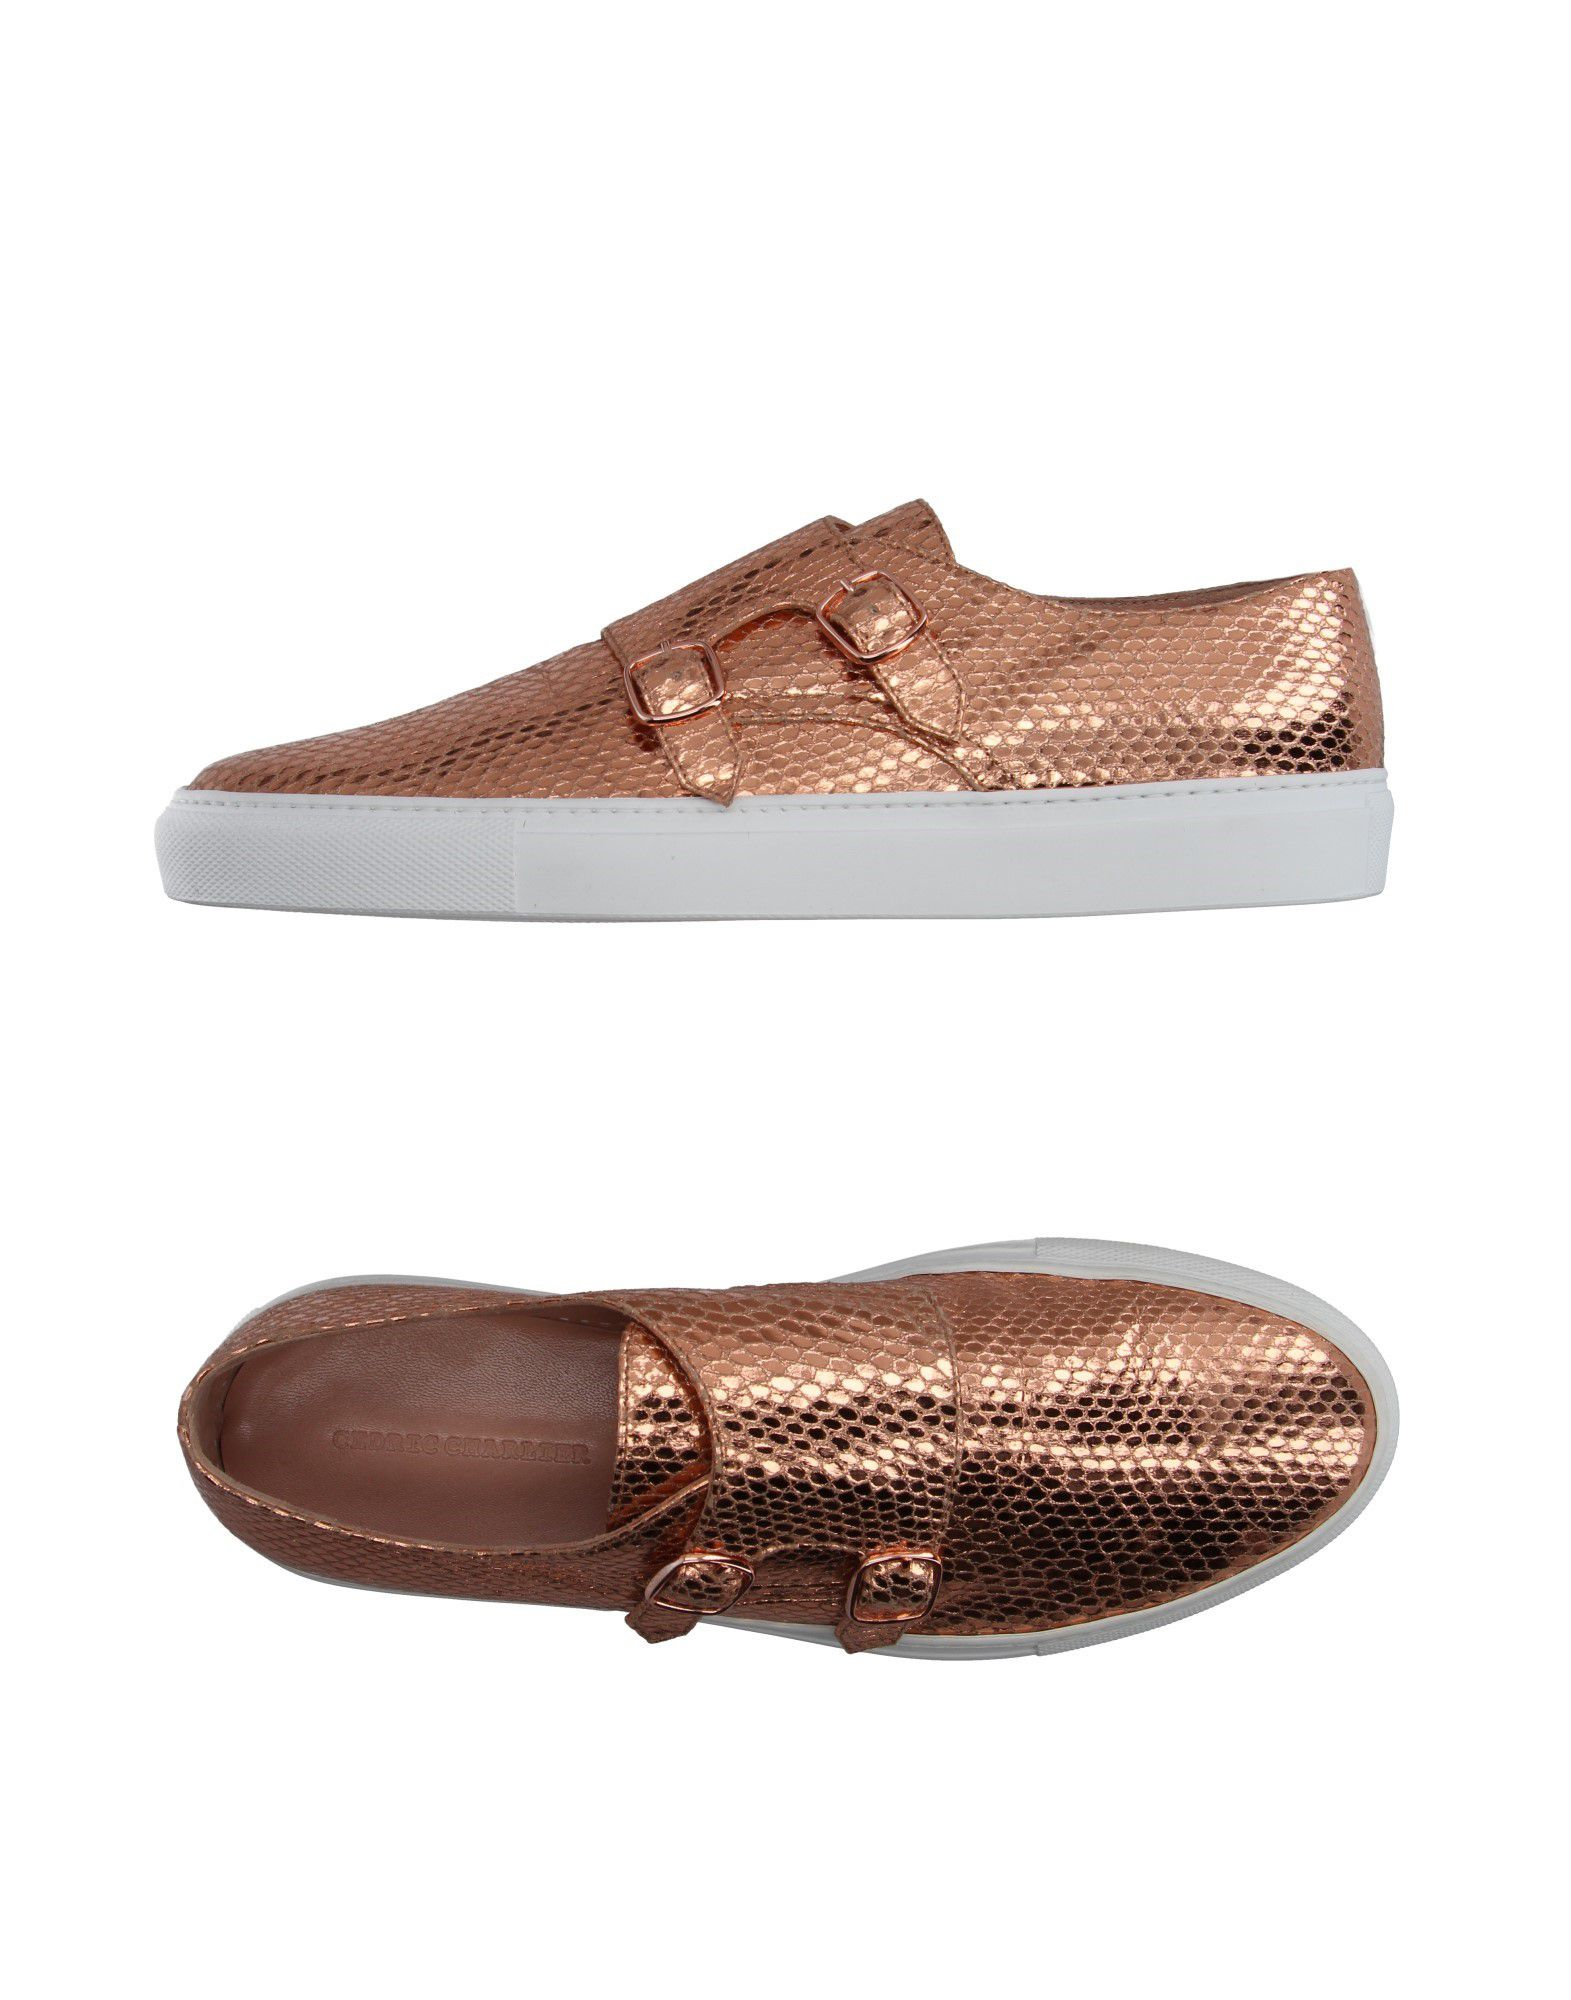 Sneakers Donna Cedric Charlier Donna Sneakers - 11132634MX 40b4c5